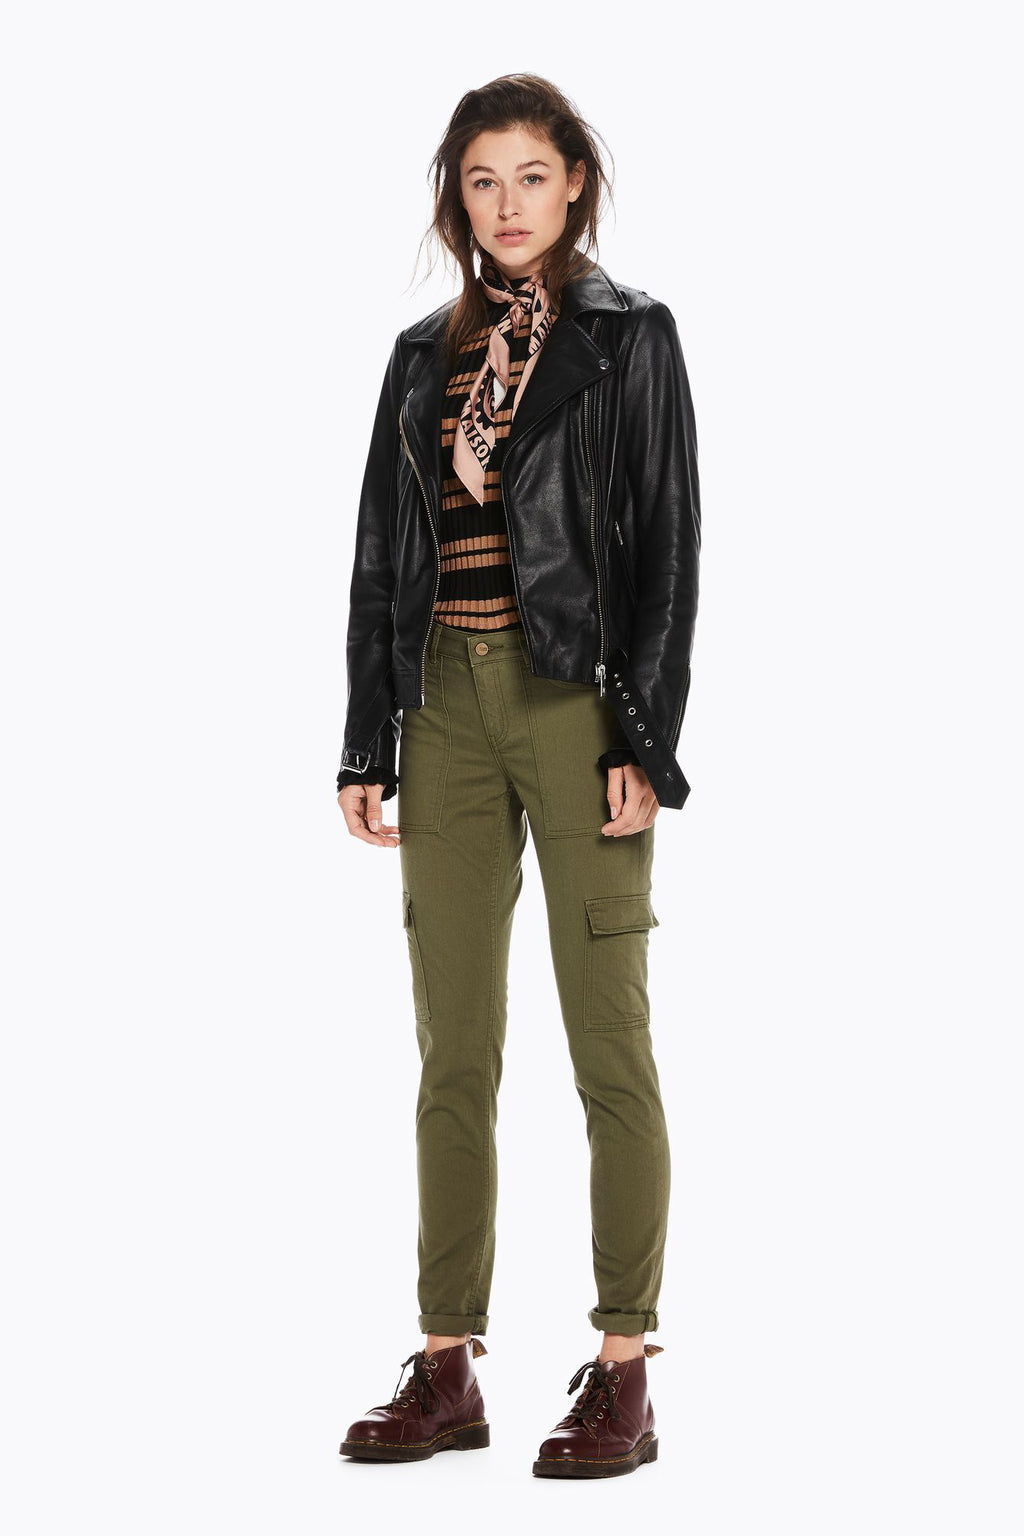 SCOTCH AND SODA - Skinny Fit Cargo Pants online at PAYA boutique